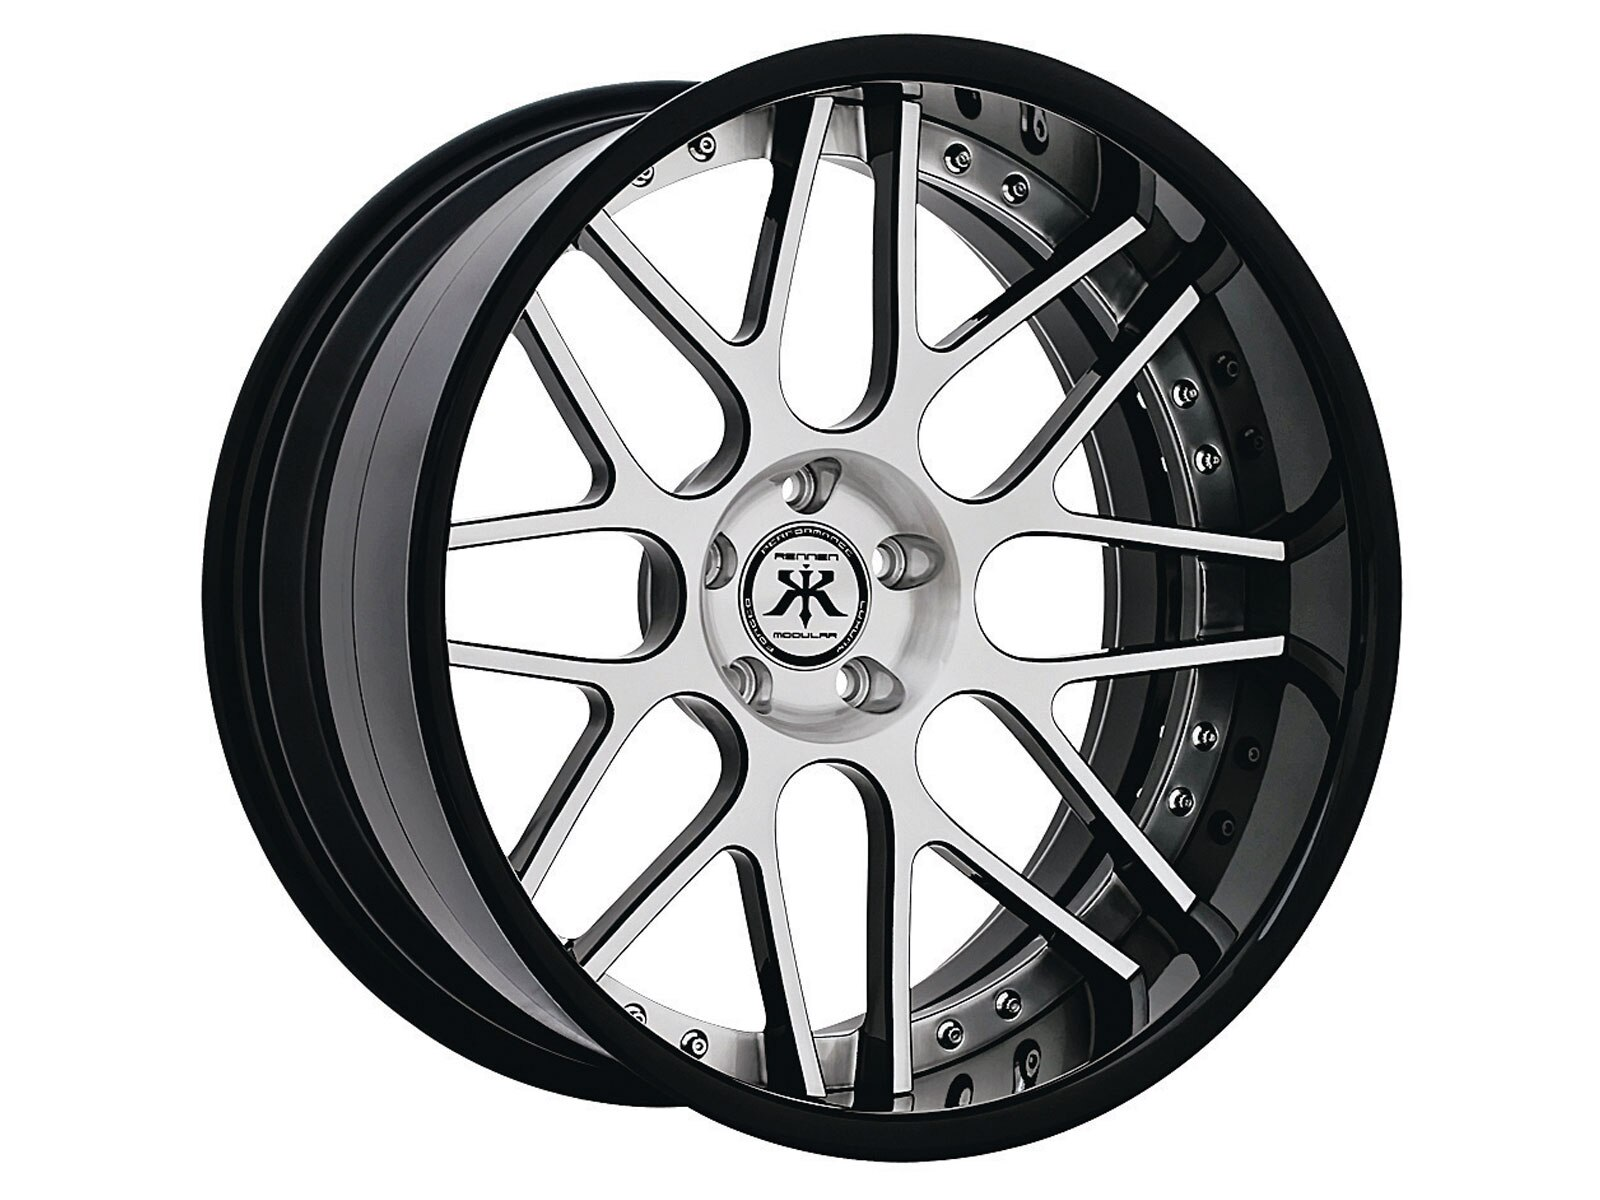 lrmp_1008_01_o-products_august_2010-luxury_wheels2